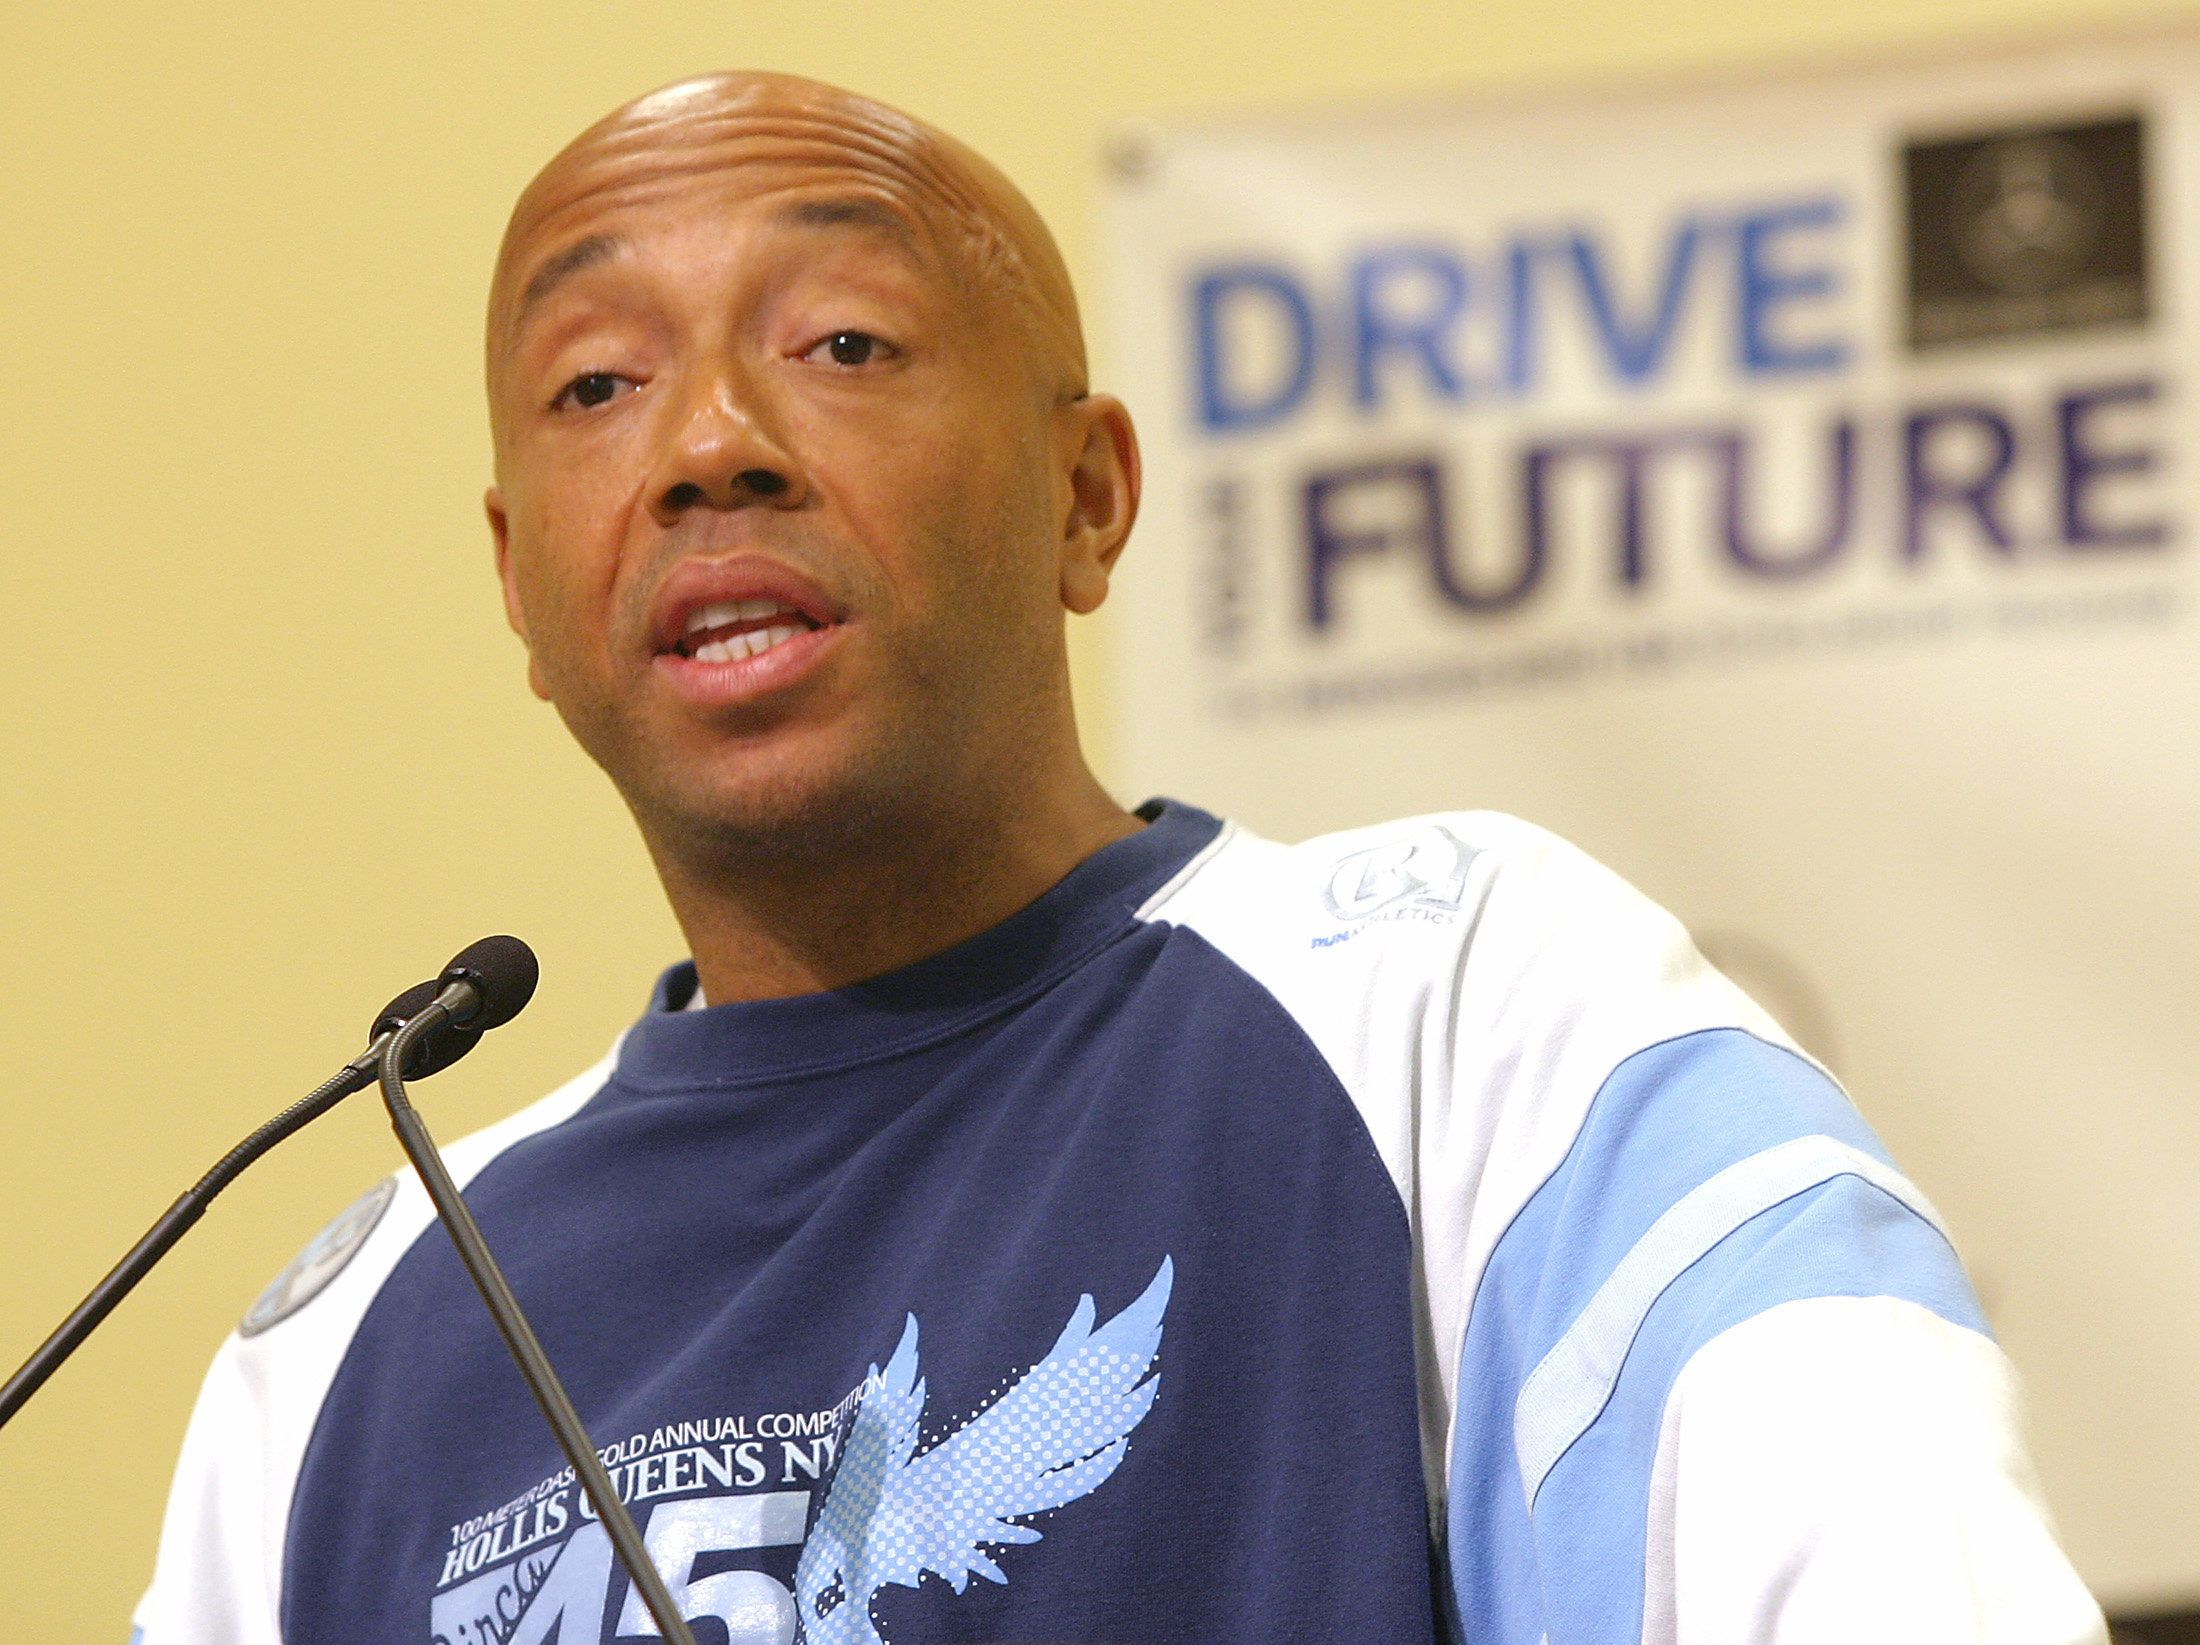 Entrepreneur Russell Simmons speaks at a Young Women's Leadership School in East Harlem, the only all girls' public school in New York, on May 26, 2004. Simmons, Young Women's Leadership School Students and Mercedes-Benz USA celebrated National Scholarship Month with a new national scholarship program currently accepting applications. A total of $500,000 in scholarships will be awarded this year for college bound seniors nationwide who are the first in their families to attend college. REUTERS/Anders Krusberg  AF